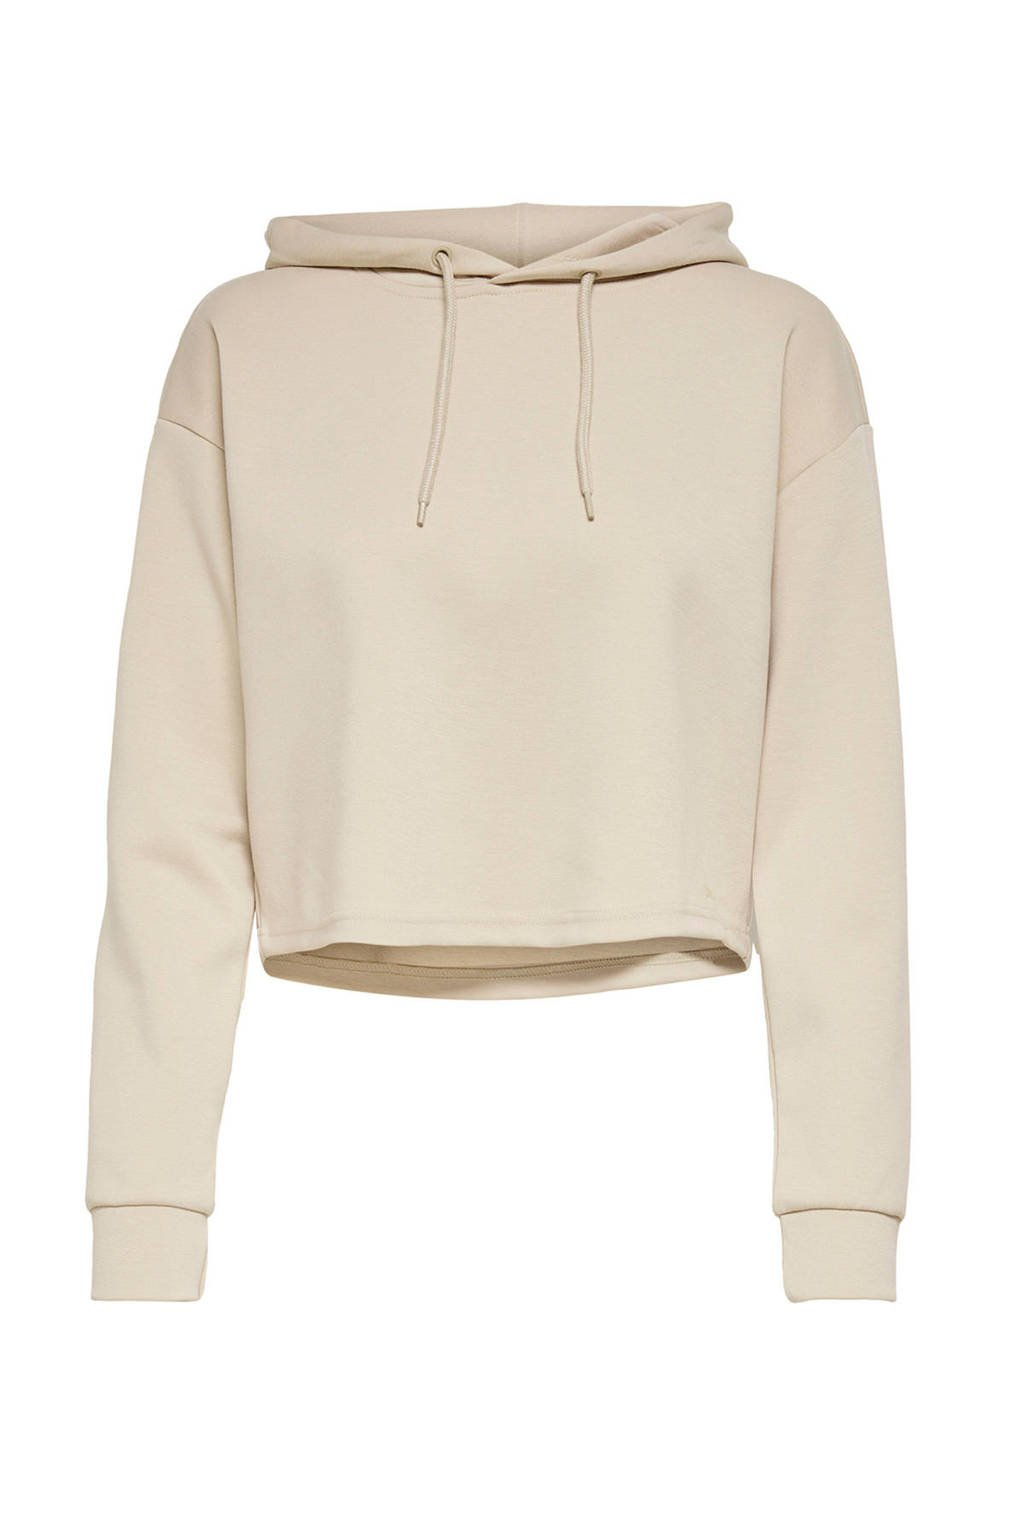 ONLY PLAY cropped sweater Lounge beige, Beige